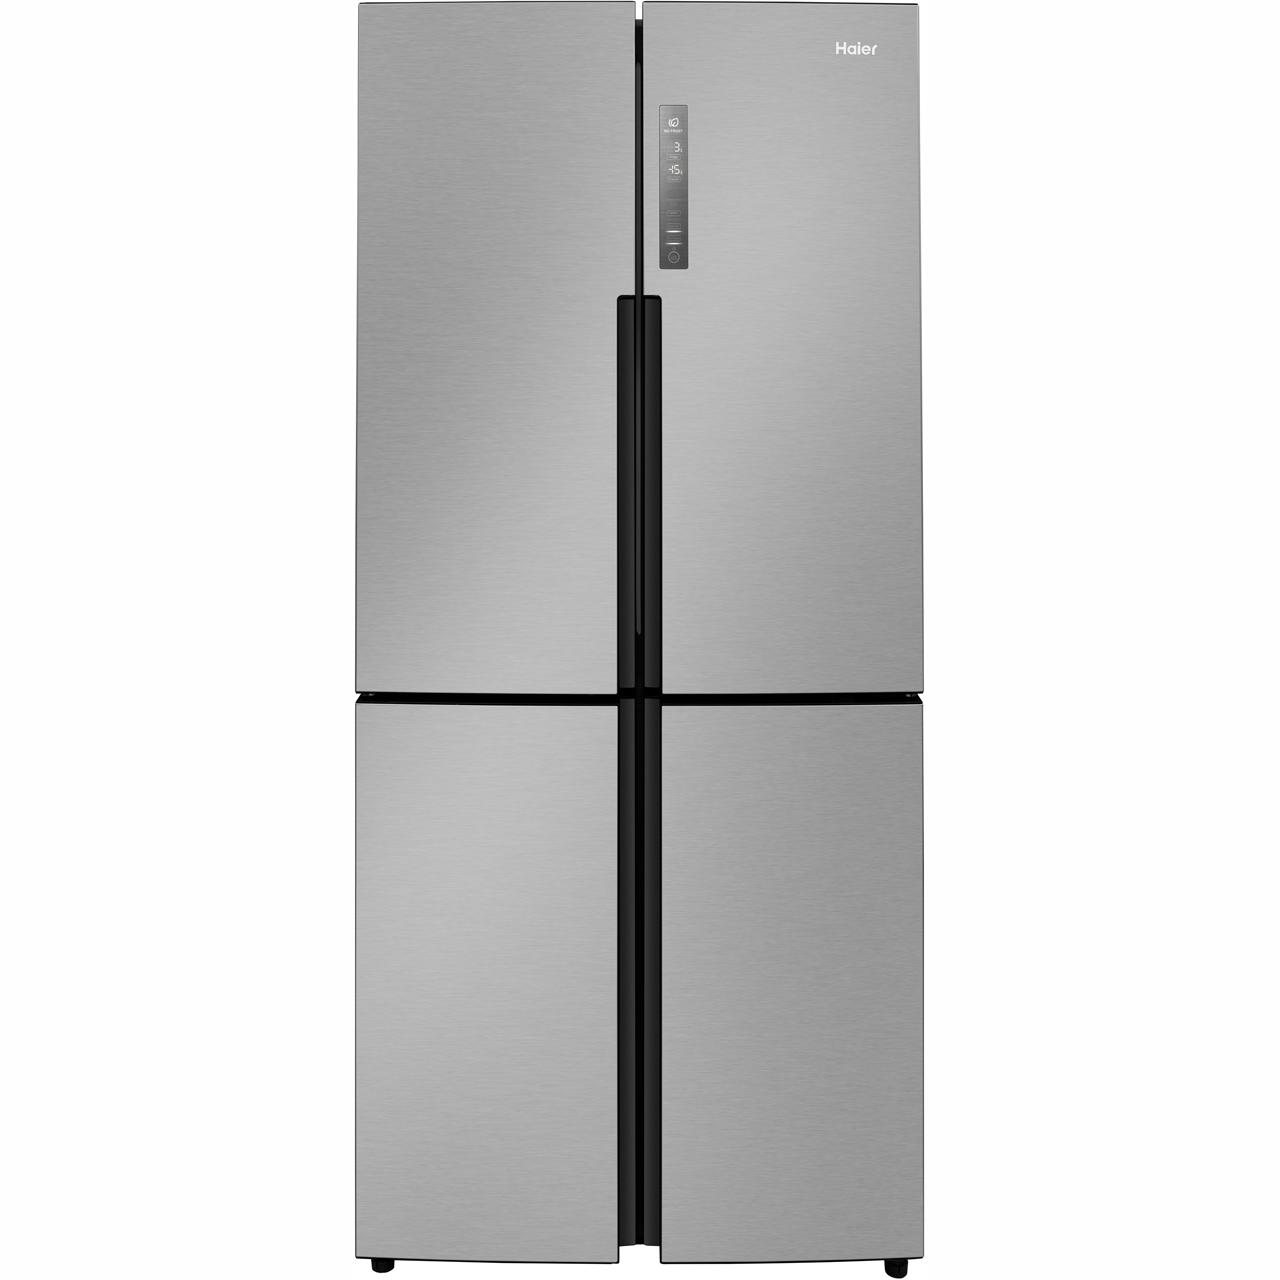 Haier HTF456DM6 Free Standing American Fridge Freezer in Stainless Steel